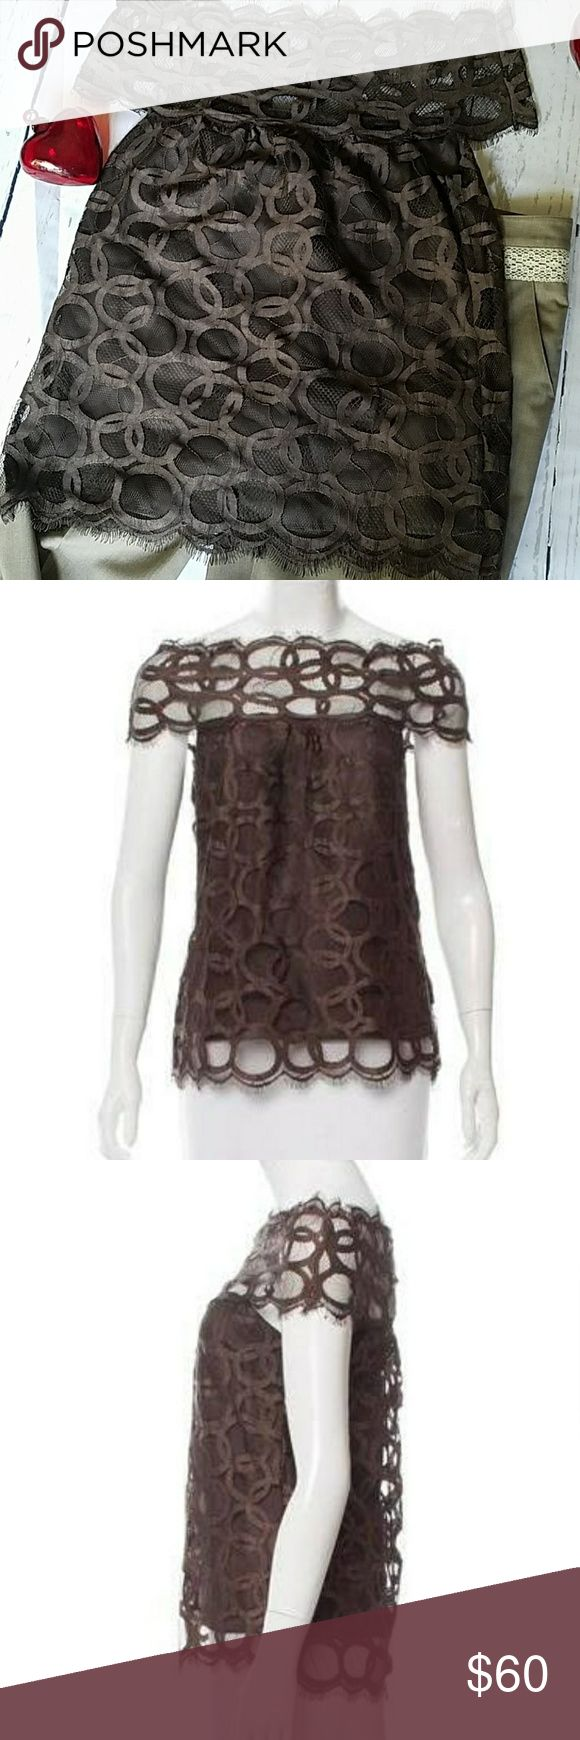 Robert Rodriguez Sleeveless Lace Top Bateau neckline. Scallop trim. Excellent used condition. Lined. Non smoking home Robert Rodriguez Tops